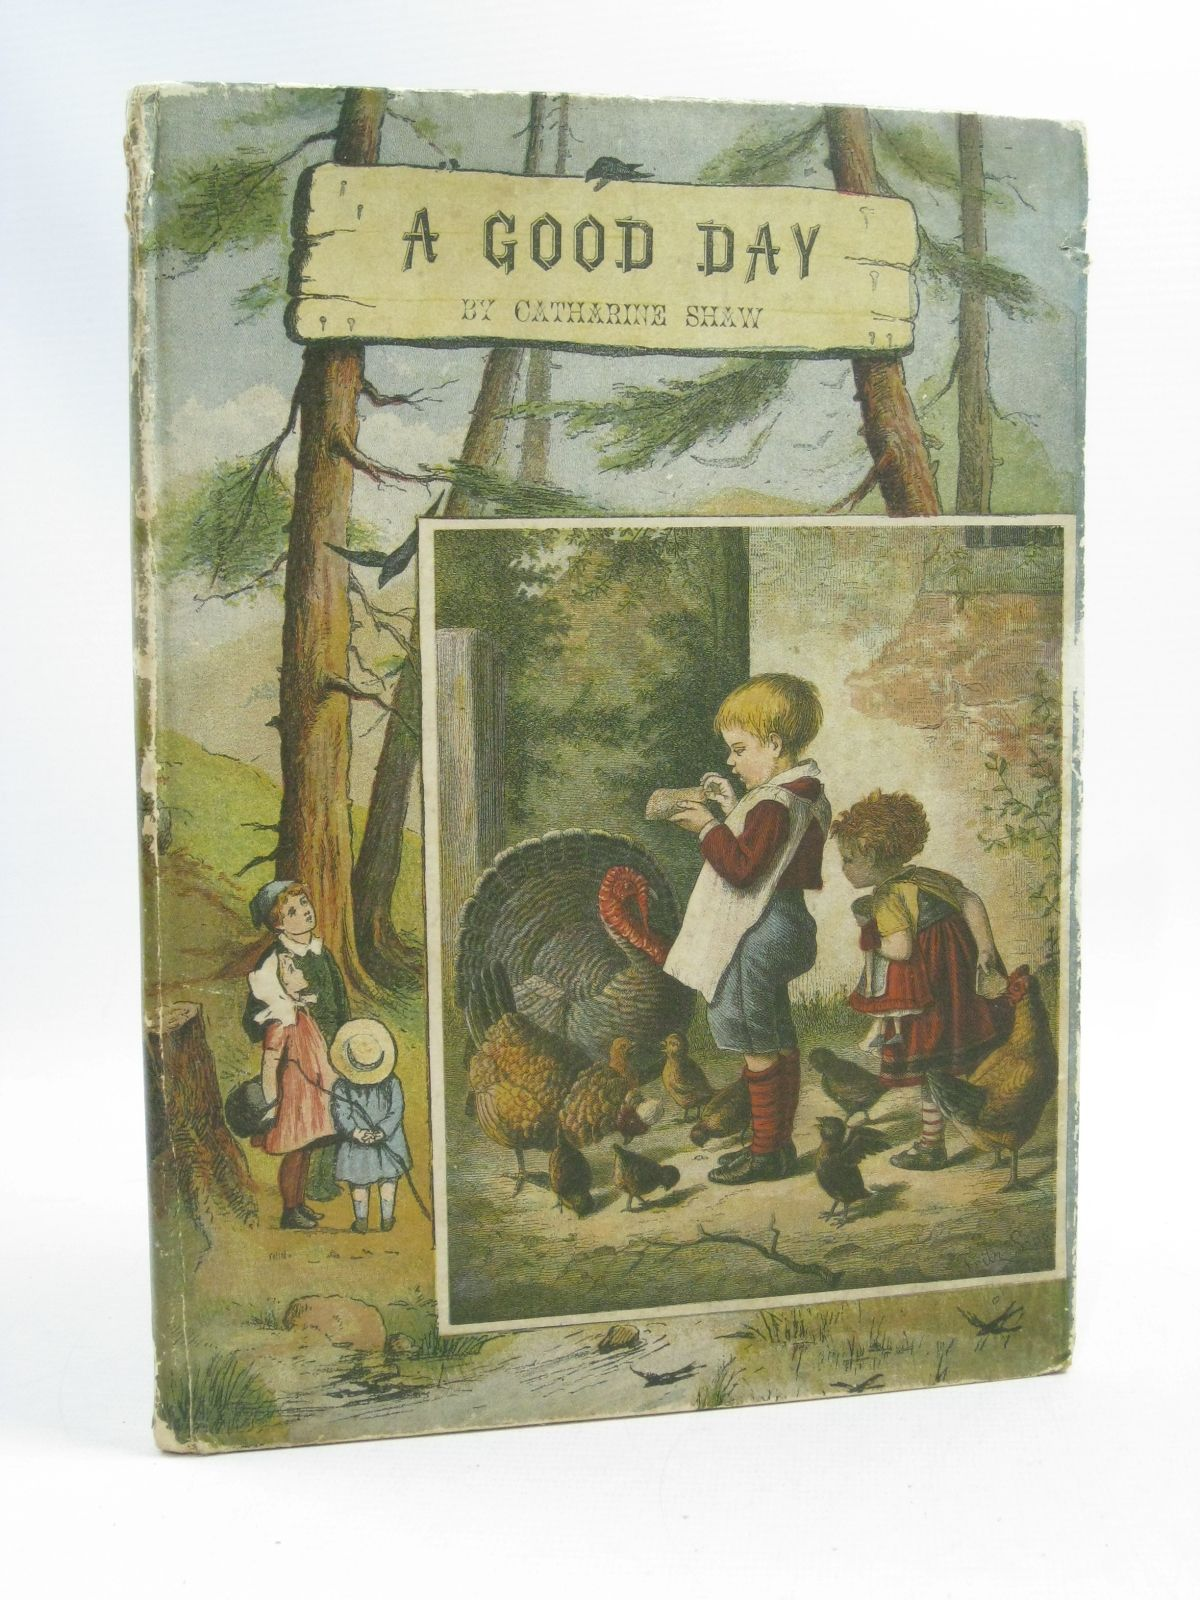 Photo of A GOOD DAY. GOOD MORNING! GOOD AFTERNOON! GOOD NIGHT! written by Shaw, Catharine published by John F. Shaw & Co Ltd. (STOCK CODE: 1404656)  for sale by Stella & Rose's Books